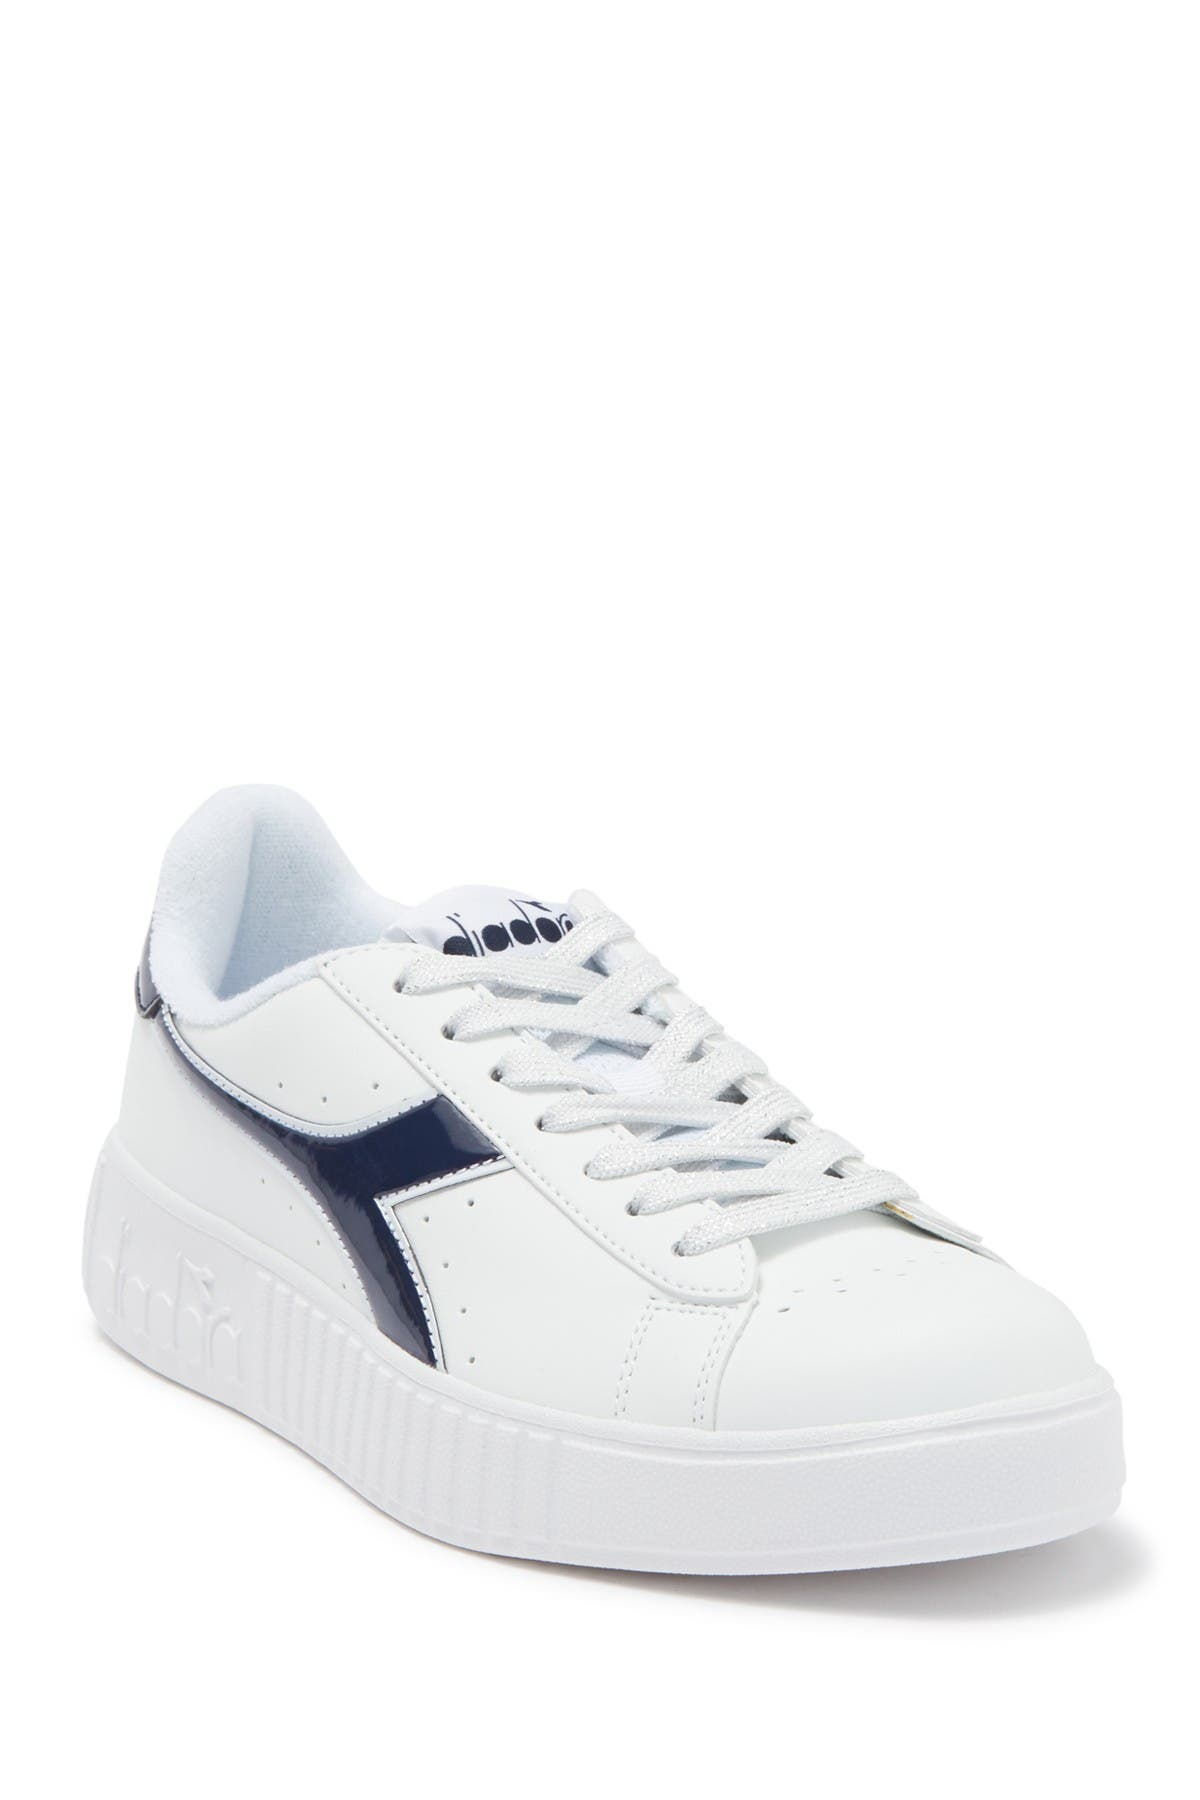 Image of Diadora Game Step Platform Sneaker